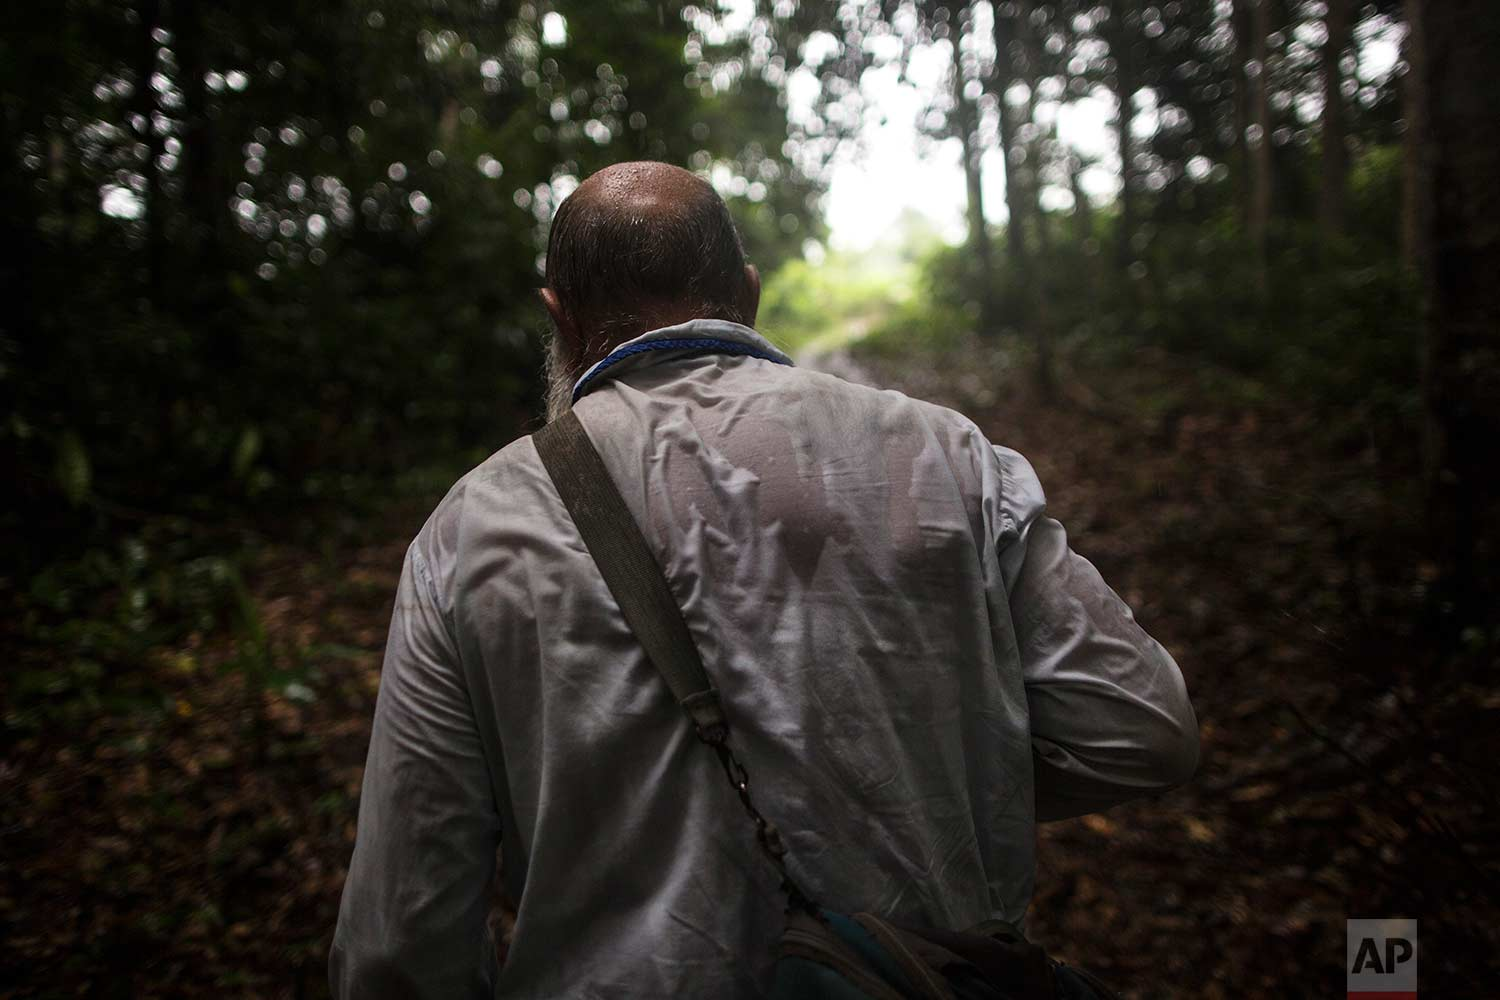 In this Jan. 15, 2018 photo, Father Pablo Zabala, better known as Padre Pablo, makes his way through the jungle under a heavy rain to the rural home of a parishioner in Boca Colorado, part of Peru's Madre de Dios region in the Amazon. (AP Photo/Rodrigo Abd) |  See these photos on AP Images